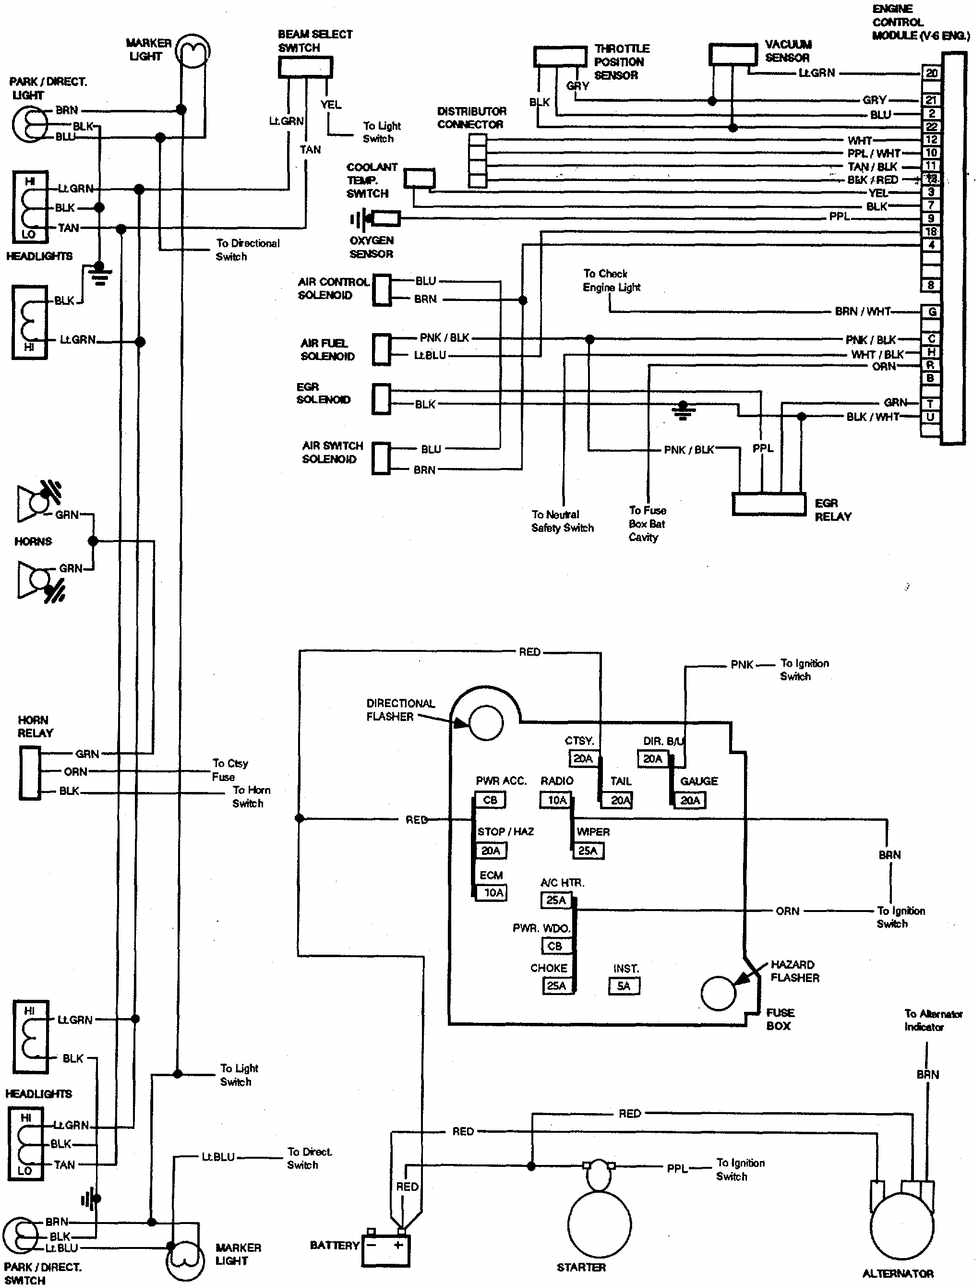 95 tahoe radio wiring diagram